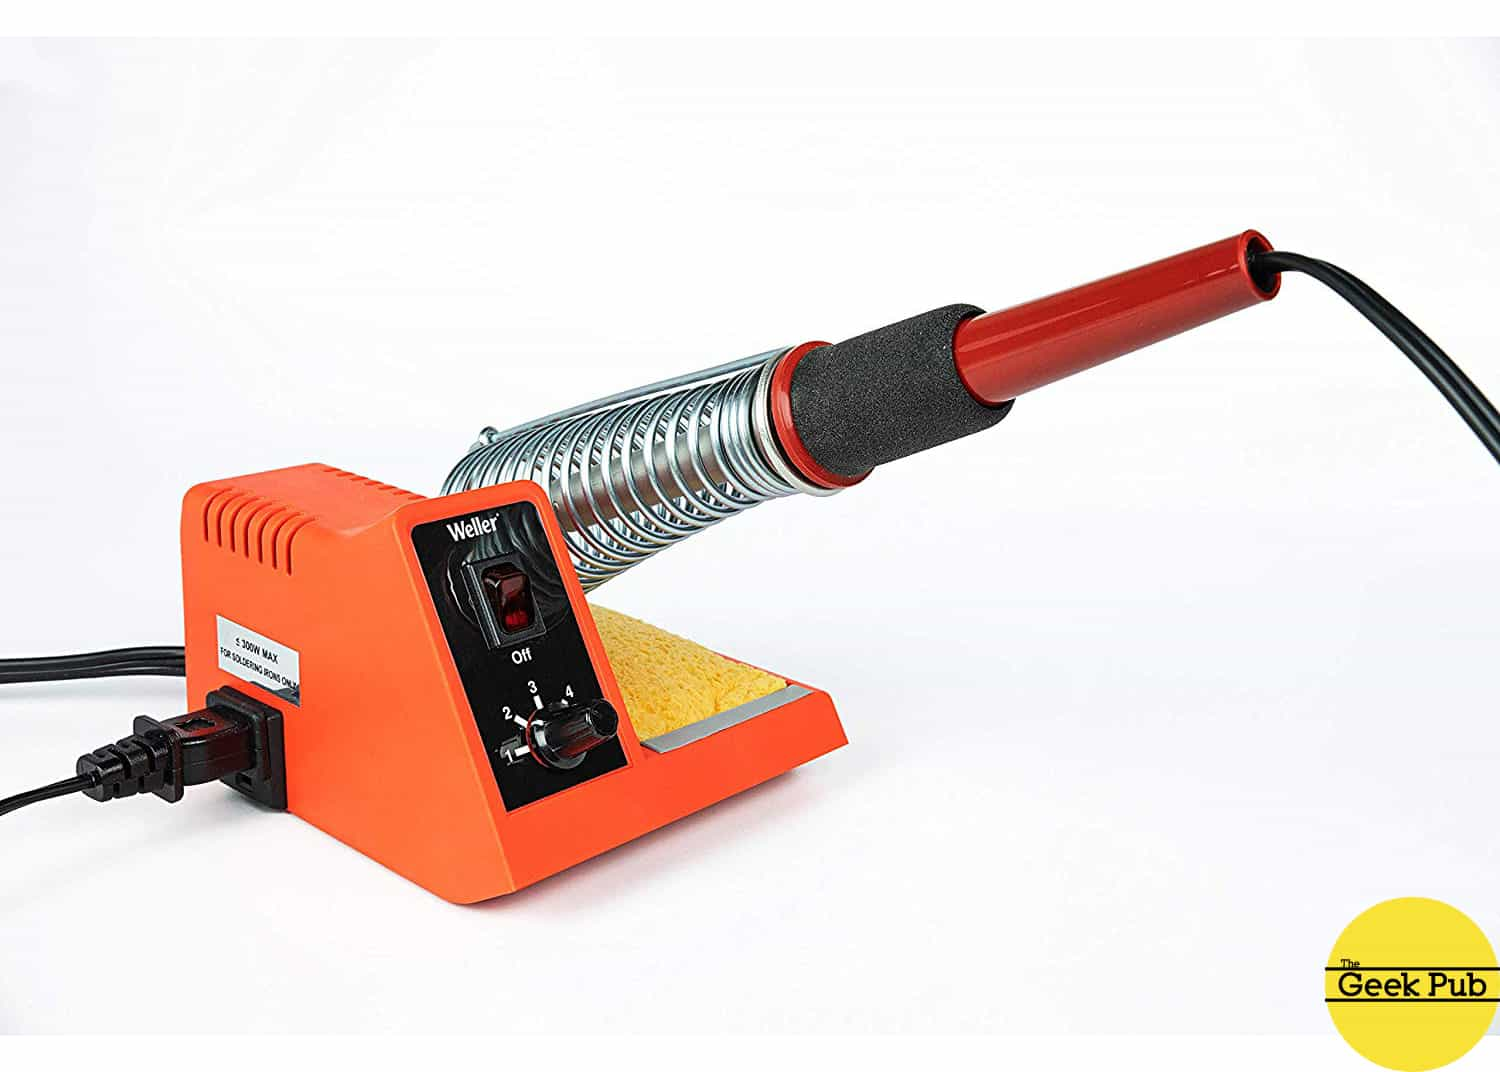 the best soldering stations 2019 - the geek pub